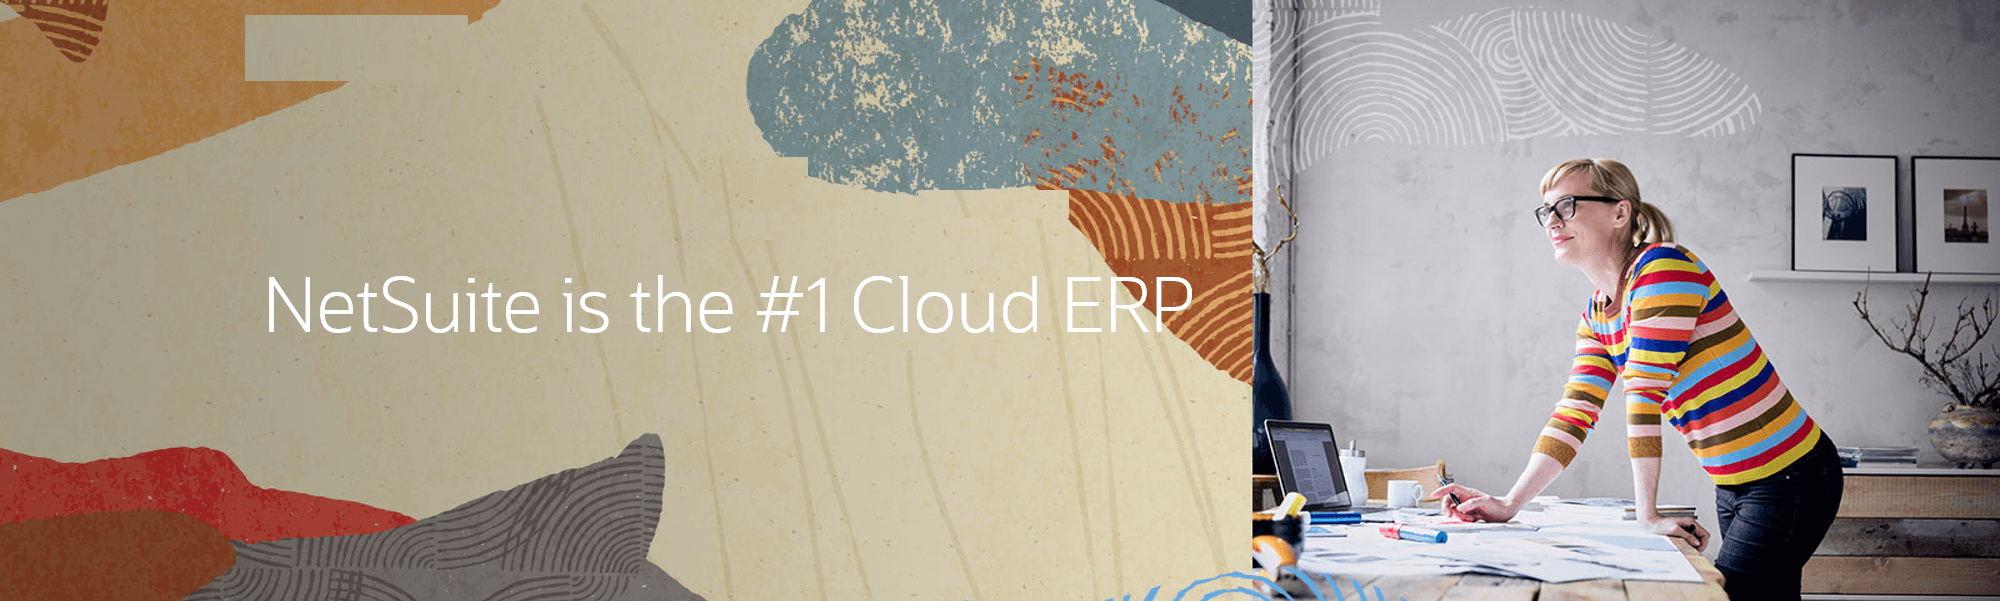 Review NetSuite: The #1 Cloud ERP for implementing your scalability - appvizer